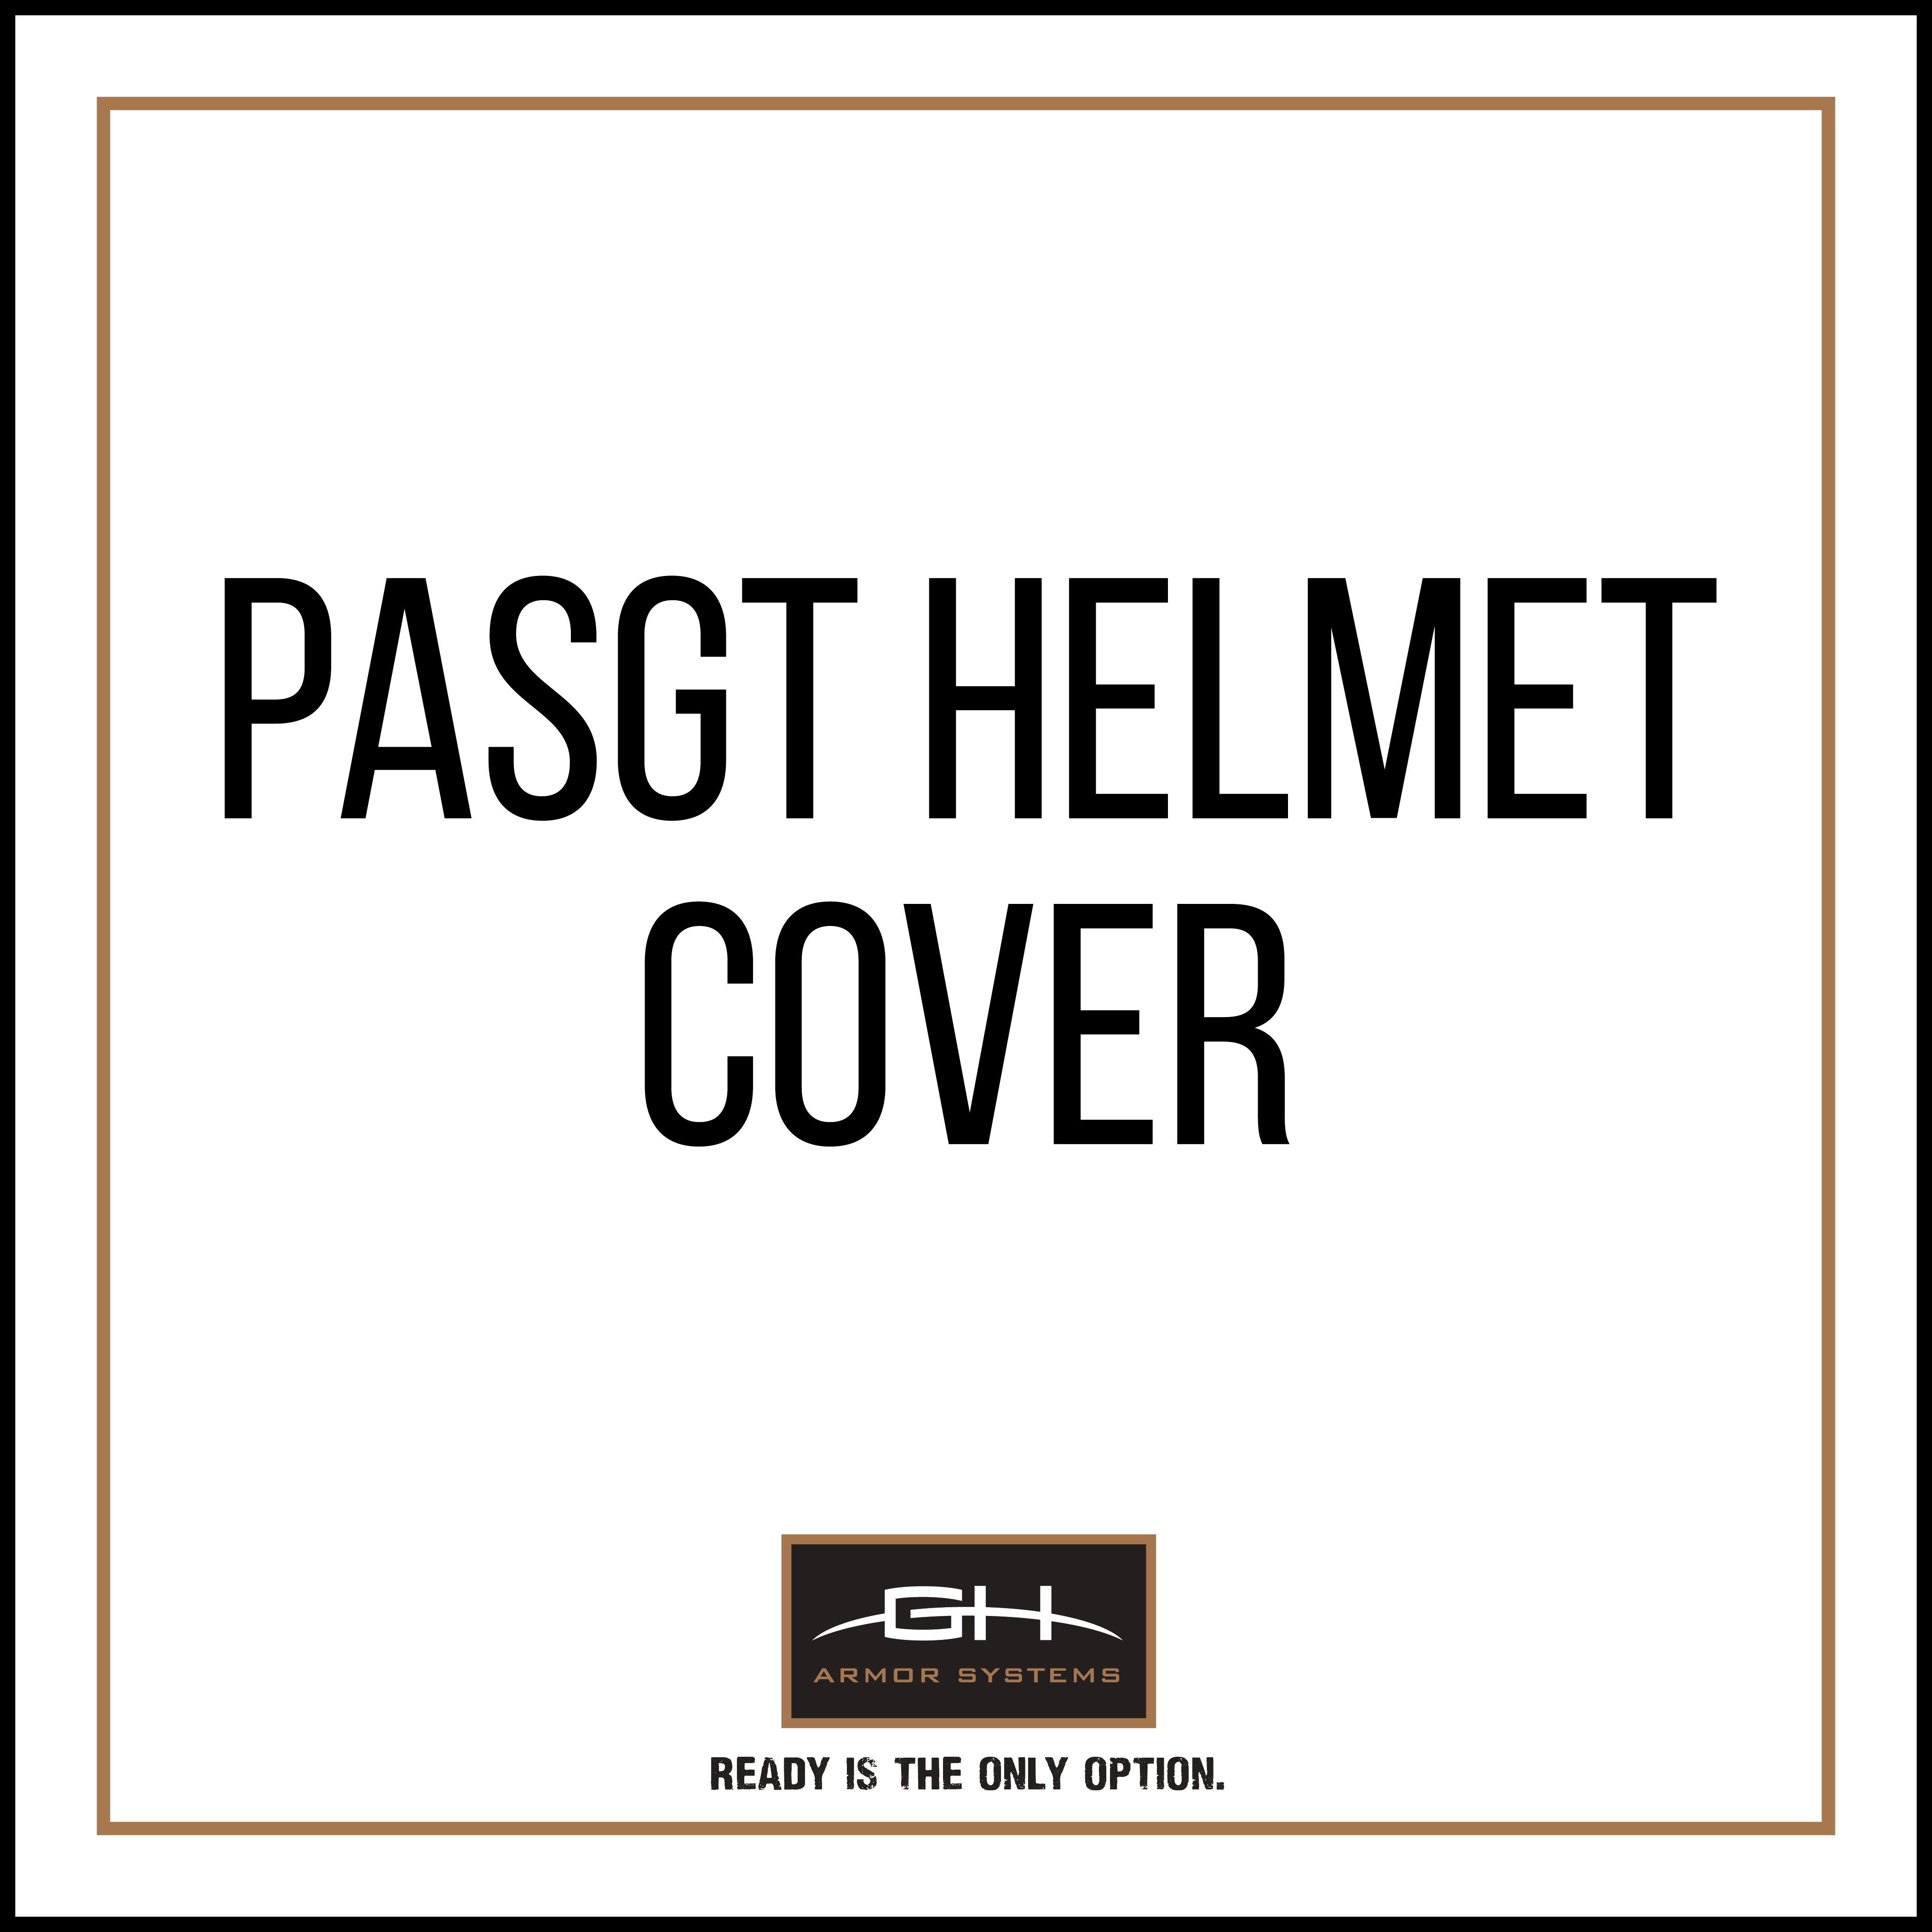 GH-HB1-COV-P Helmet Cover for PASGT Helmet-GH Armor Systems